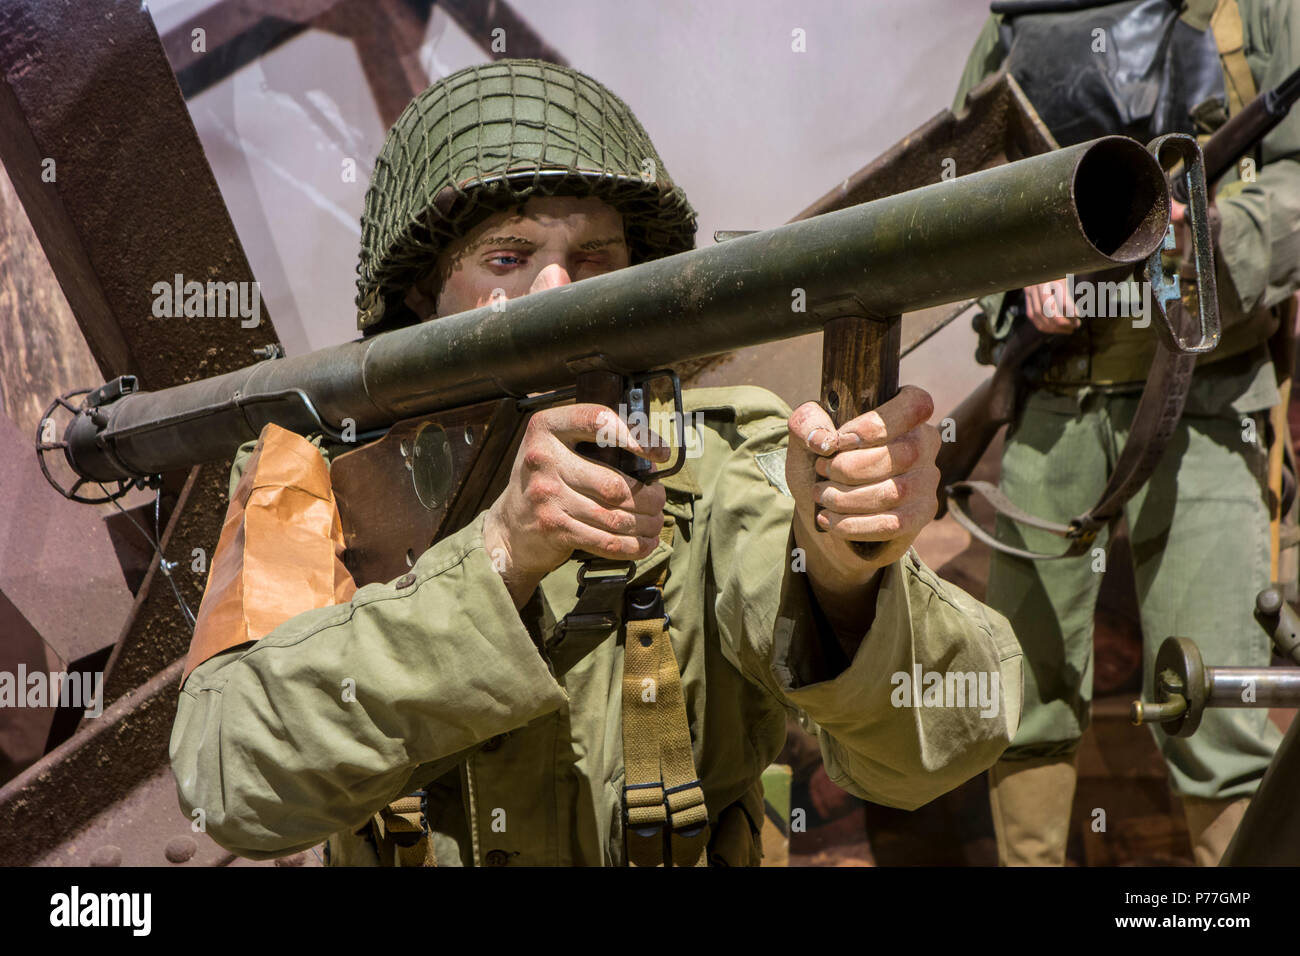 Diorama Showing Ww2 Us Soldier Firing Bazooka At Omaha Beach In The Overlord Museum About Wwii D Day Colleville Sur Mer Normandy France Stock Photo Alamy